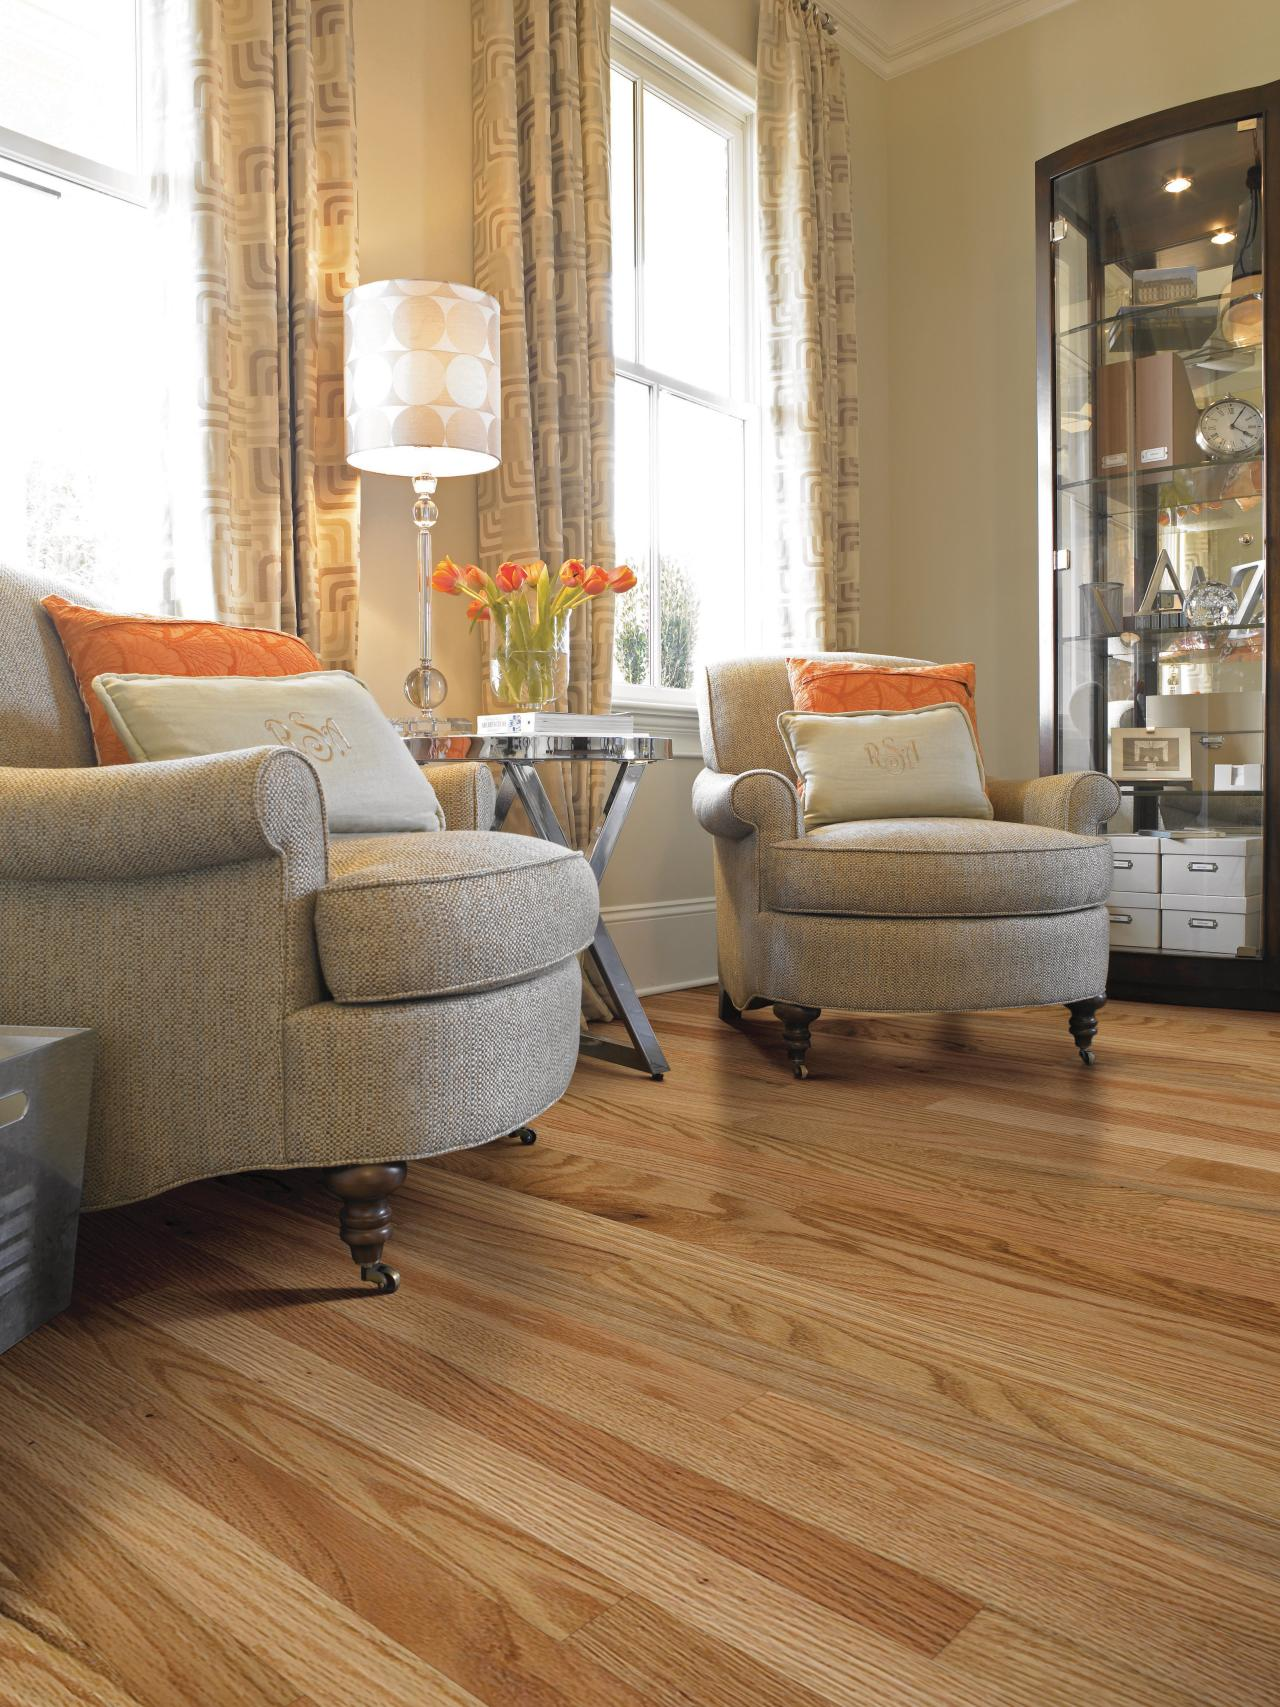 10 stunning hardwood flooring options interior design for Hardwood floor color options